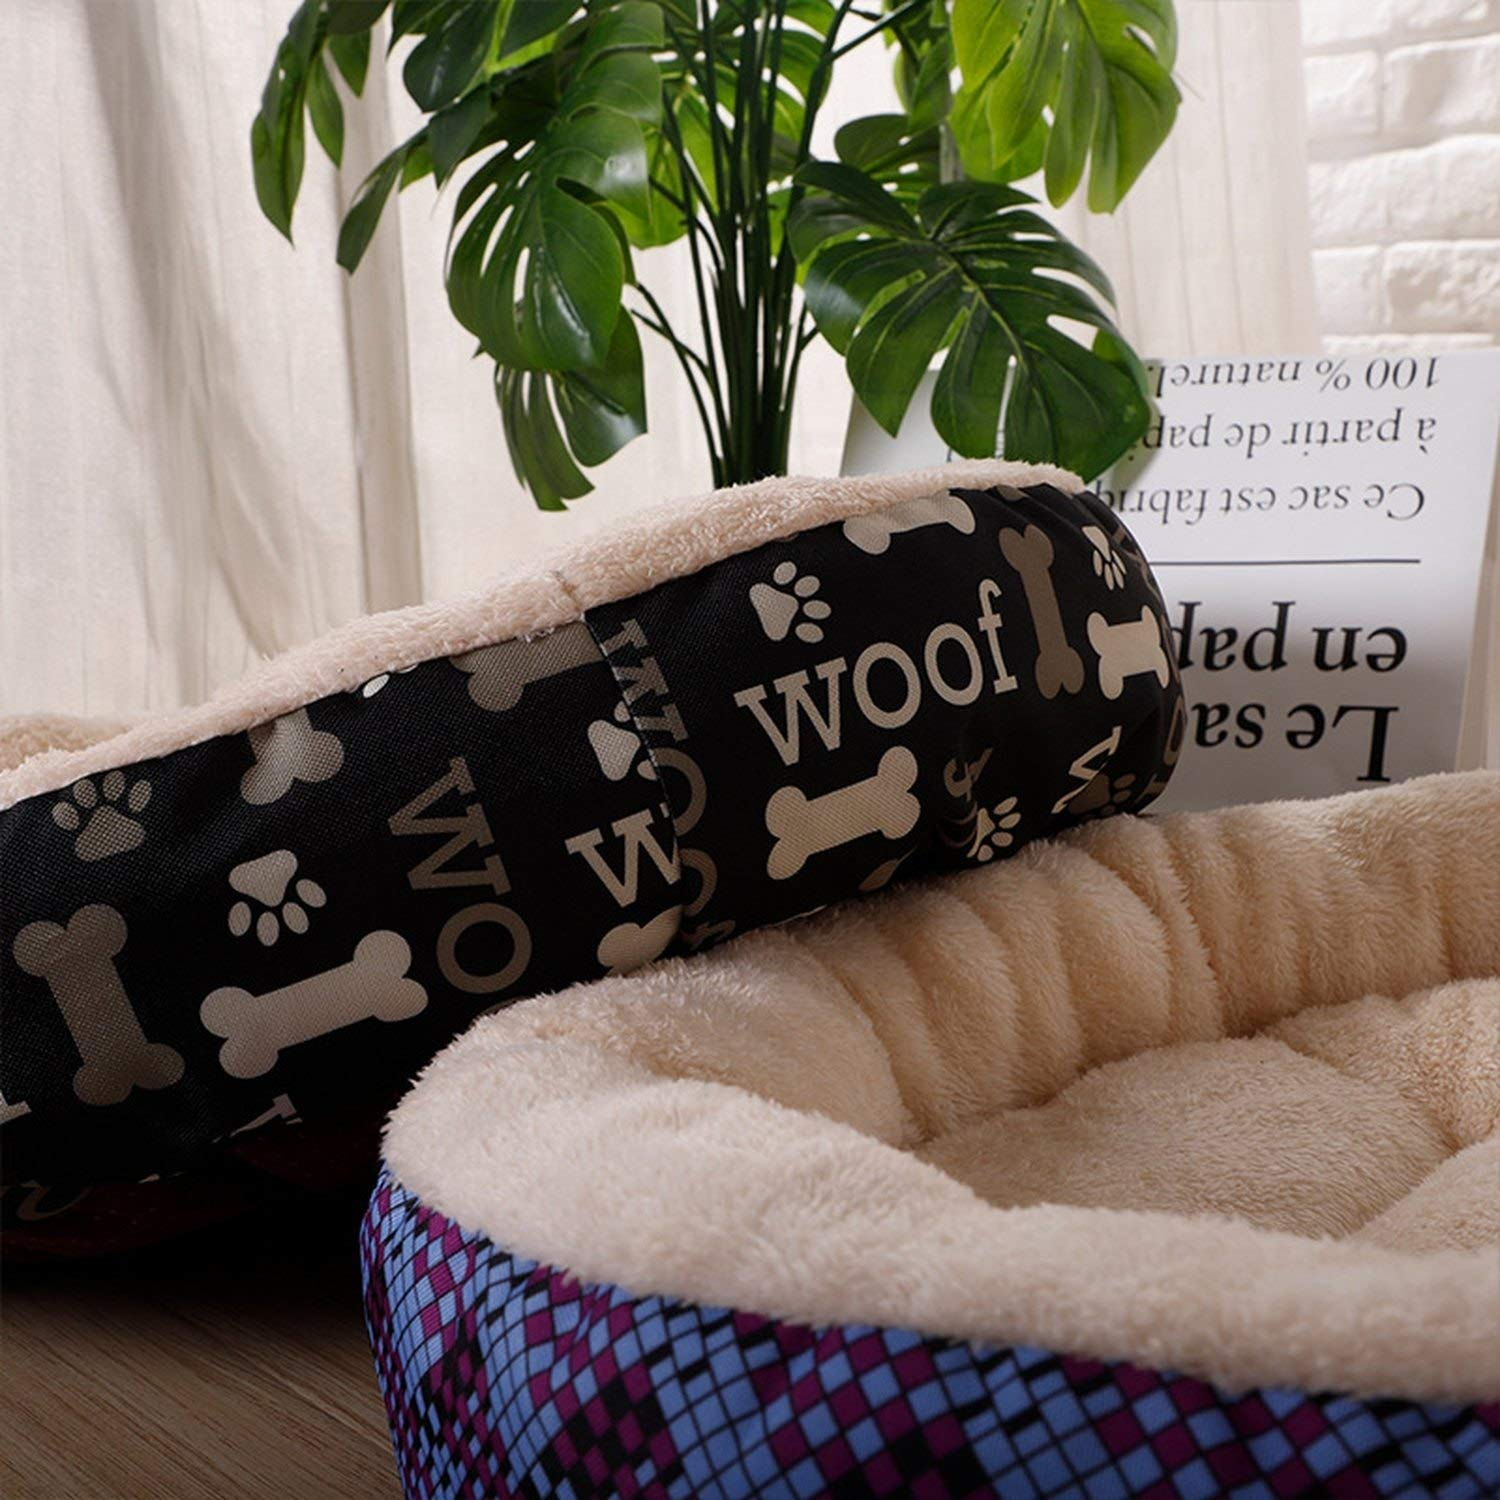 Amazon.com : f5zhangdd Pet Products Dog Bed for Small Medium ...